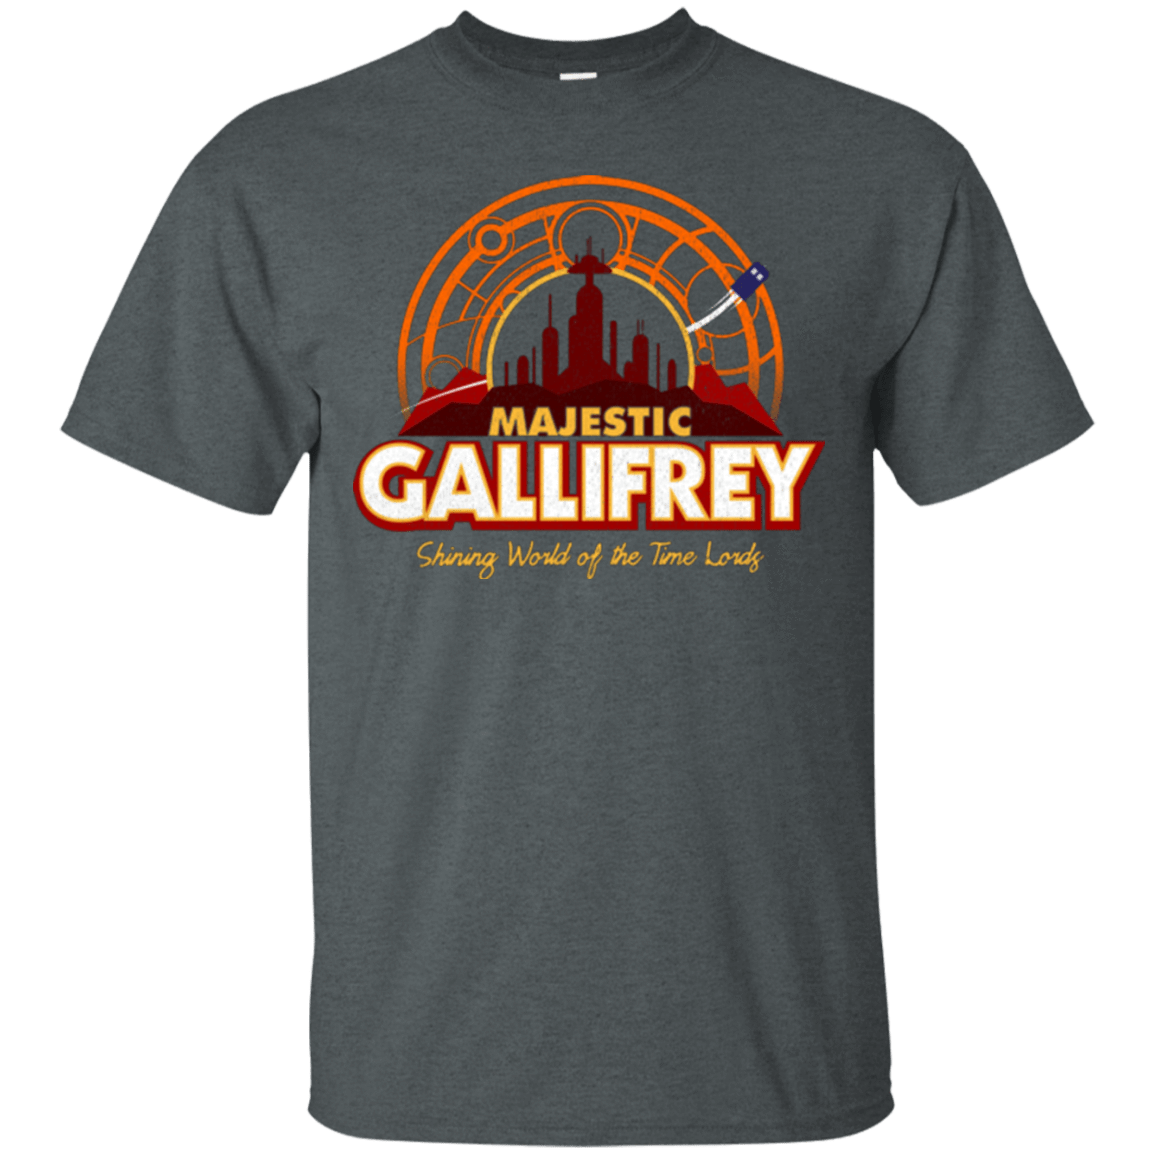 T-Shirts Dark Heather / Small Majestic Gallifrey T-Shirt